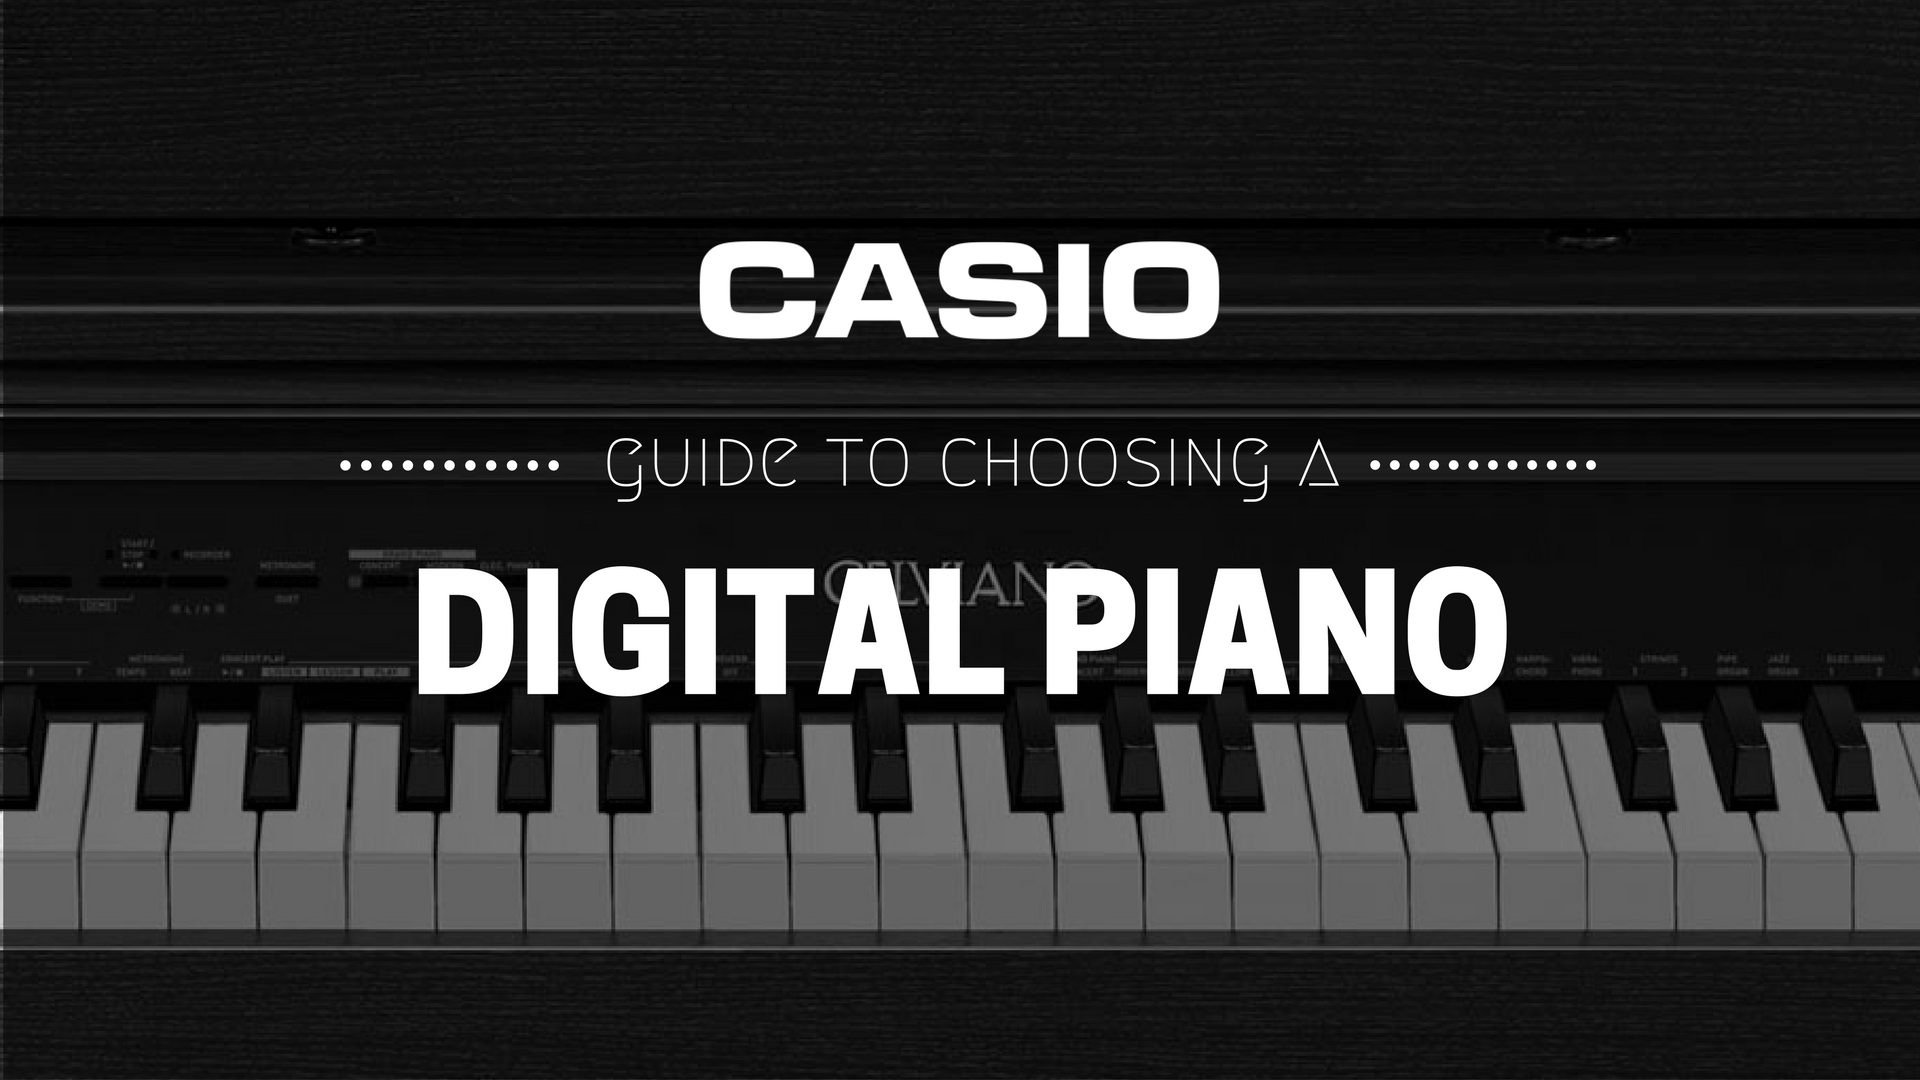 Casio Guide to Choosing A Digital Piano